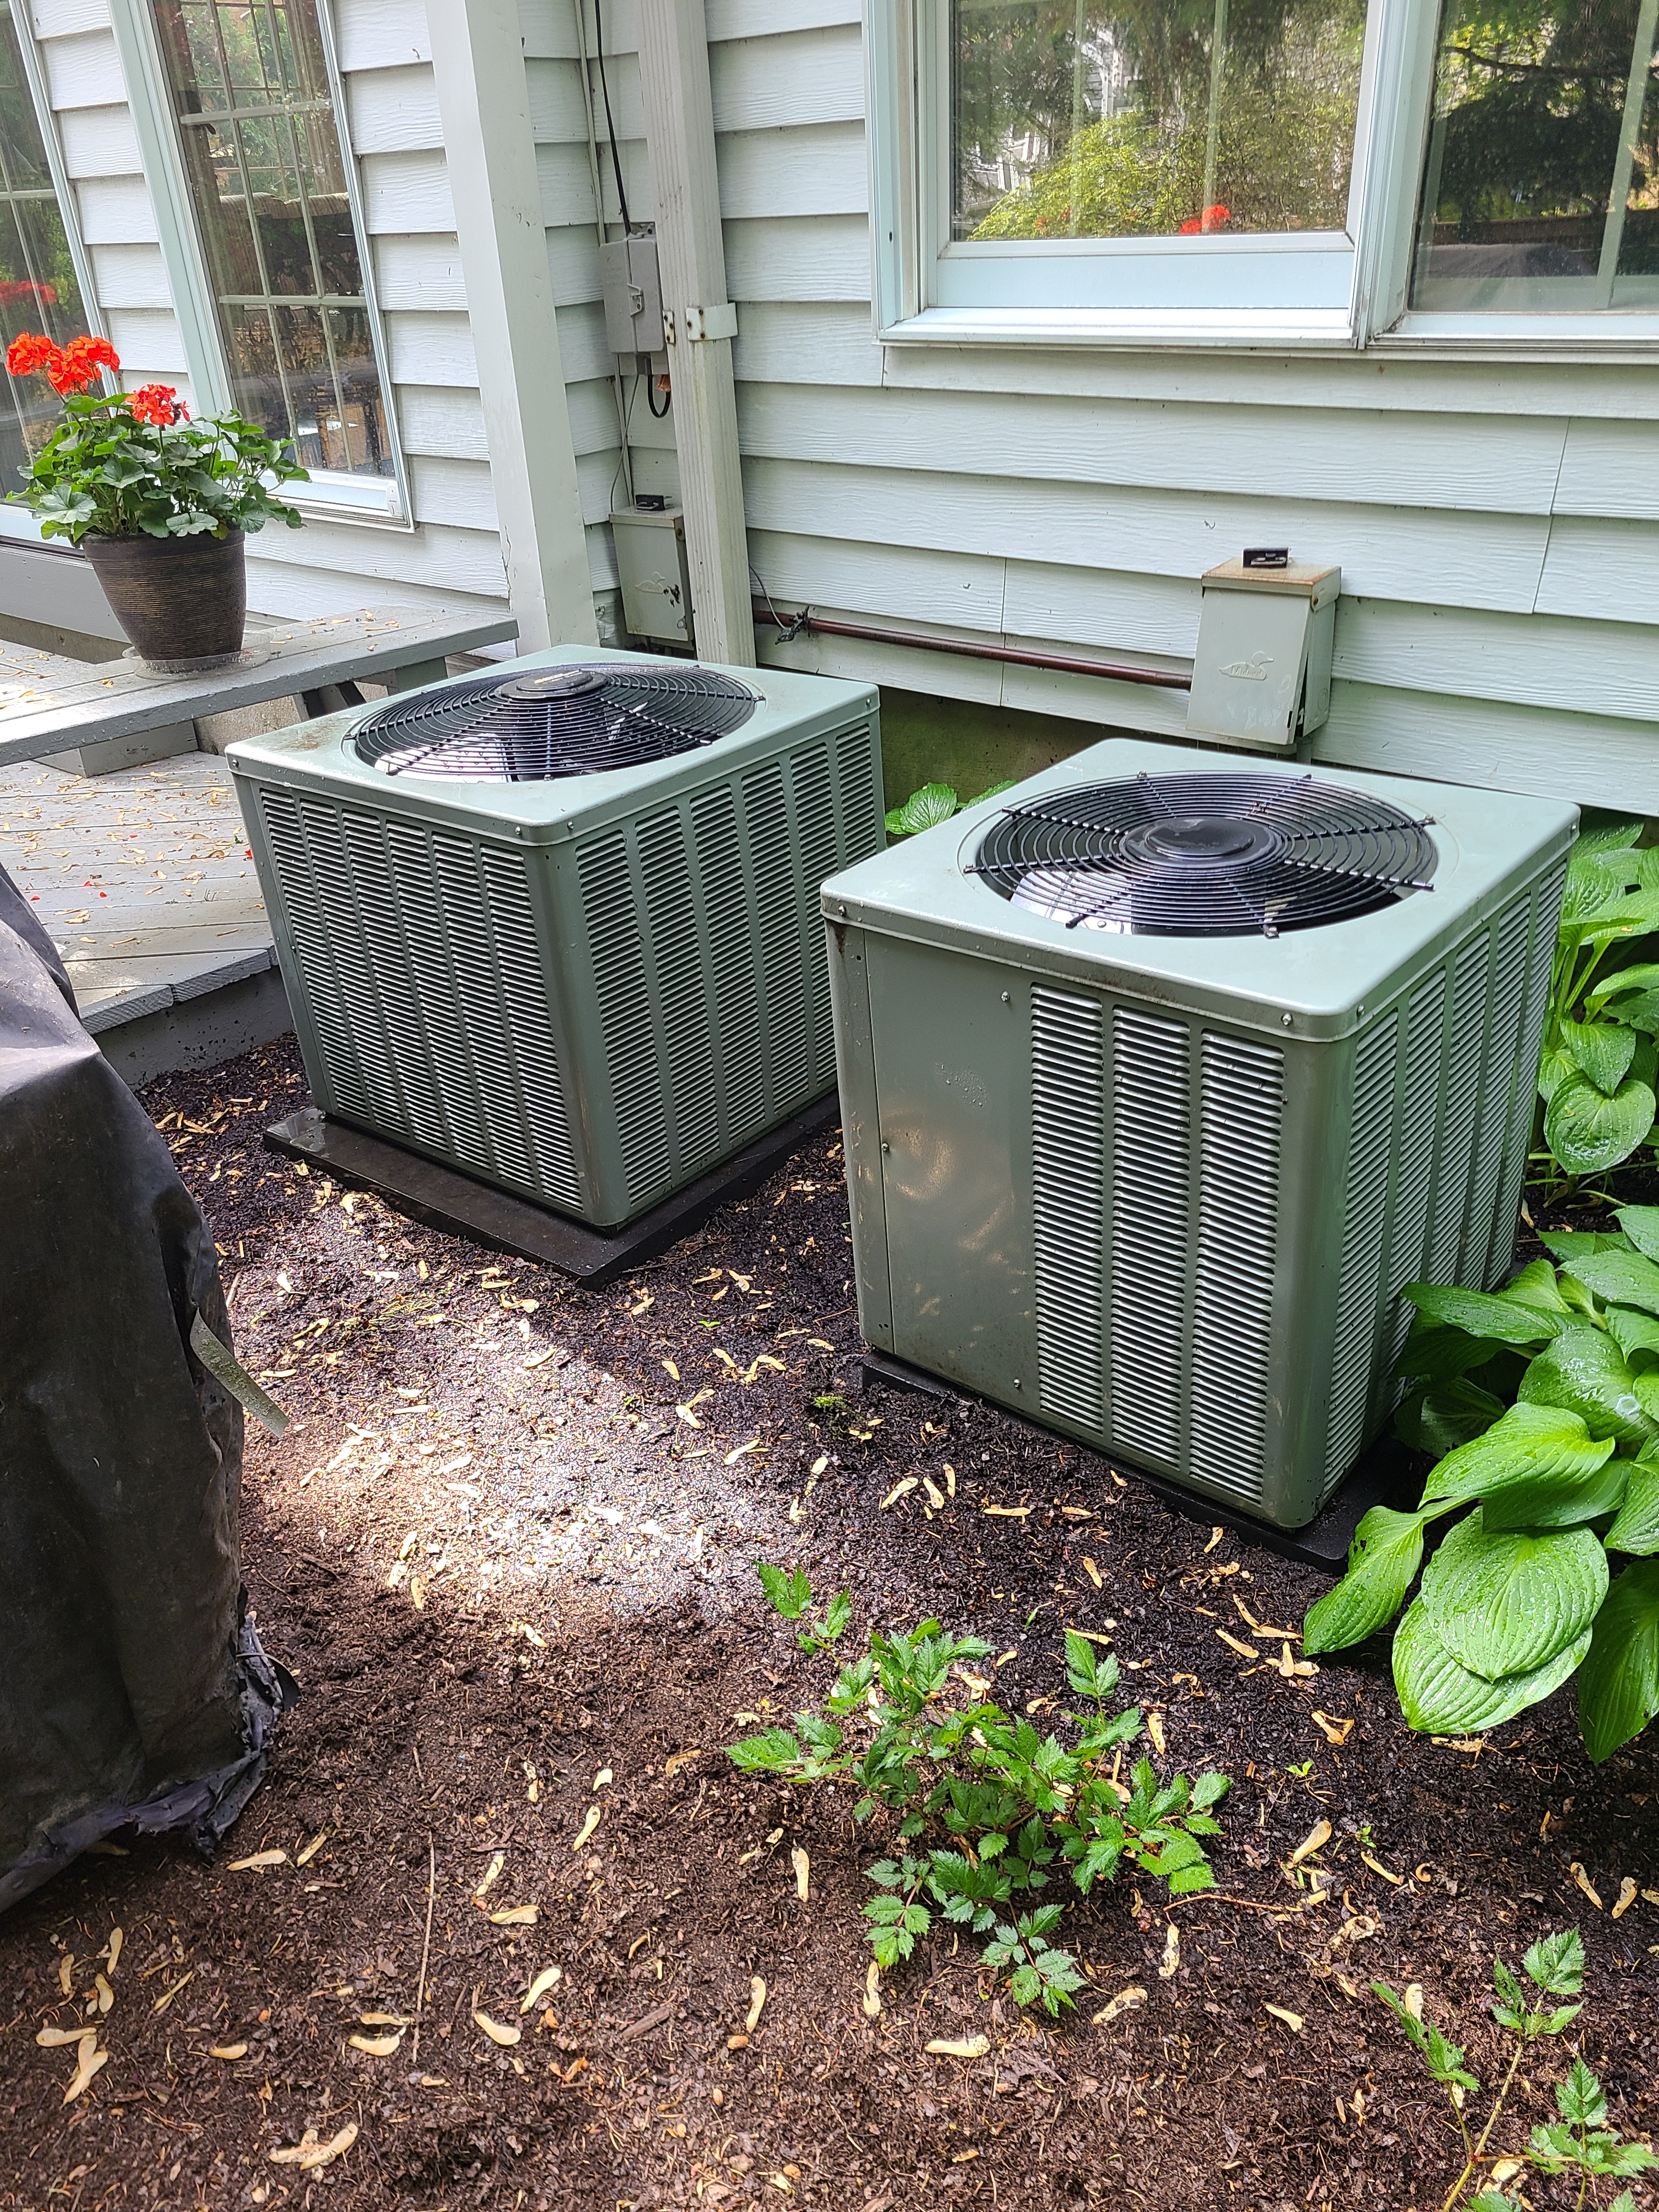 2 RHEEM 410a units cleaned and ready for spring/ summer operation